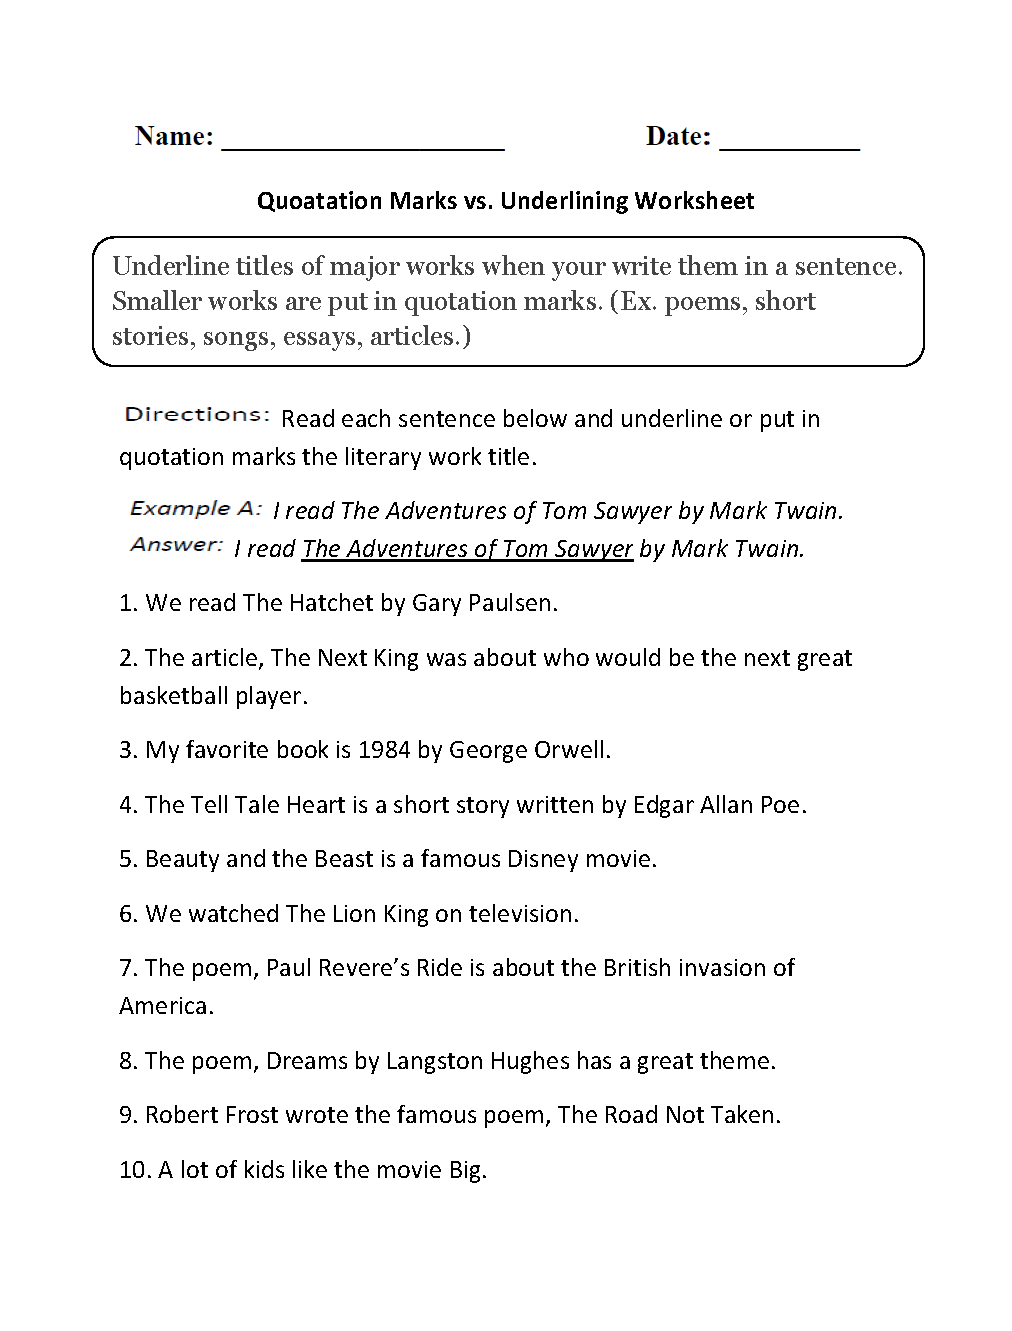 quotation marks vs underlining worksheets grammar  quotation marks vs underlining worksheets